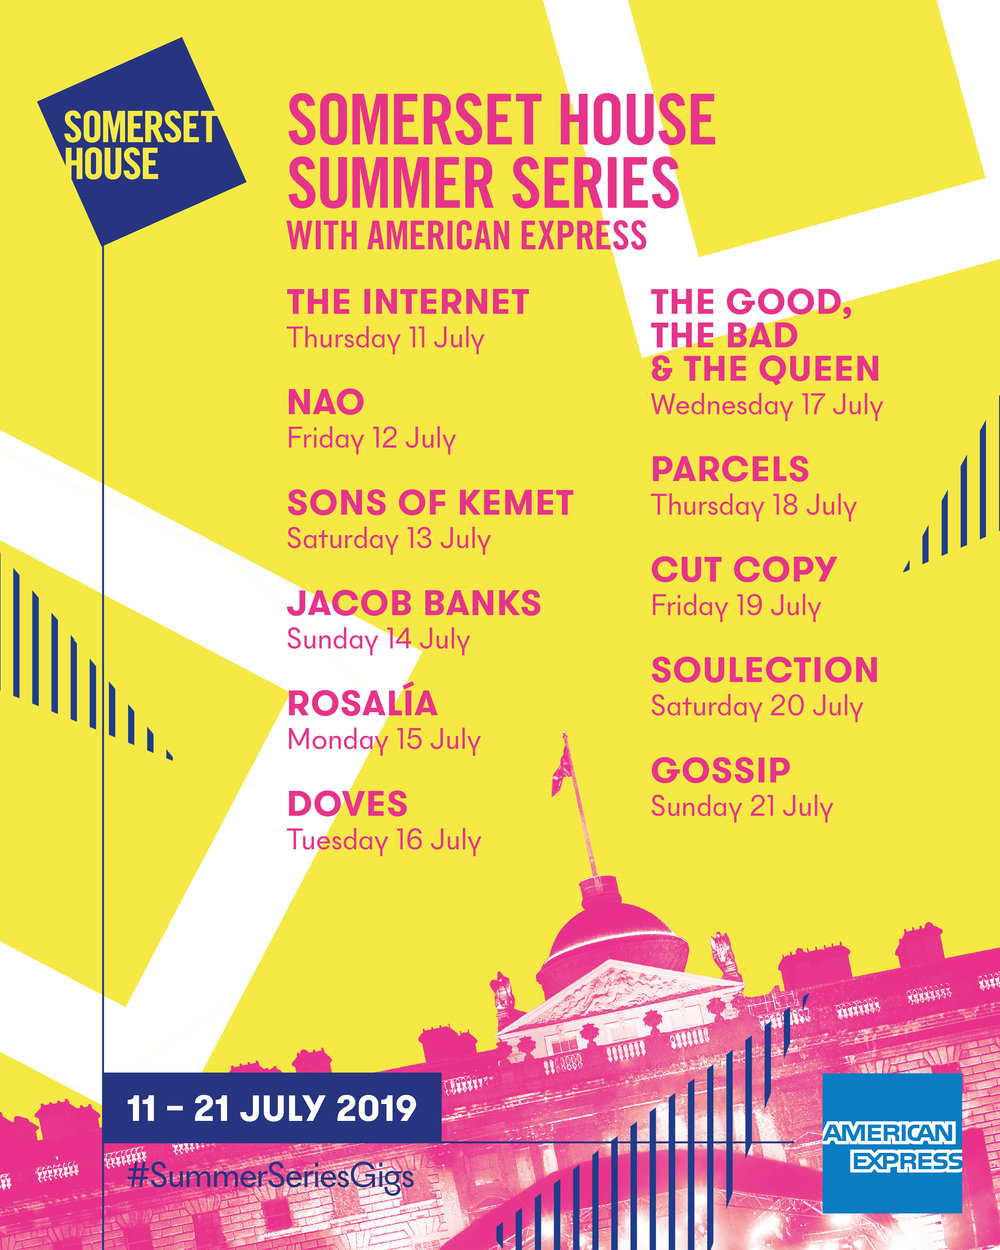 11. Somerset House Summer Series 2019 line-up.jpg